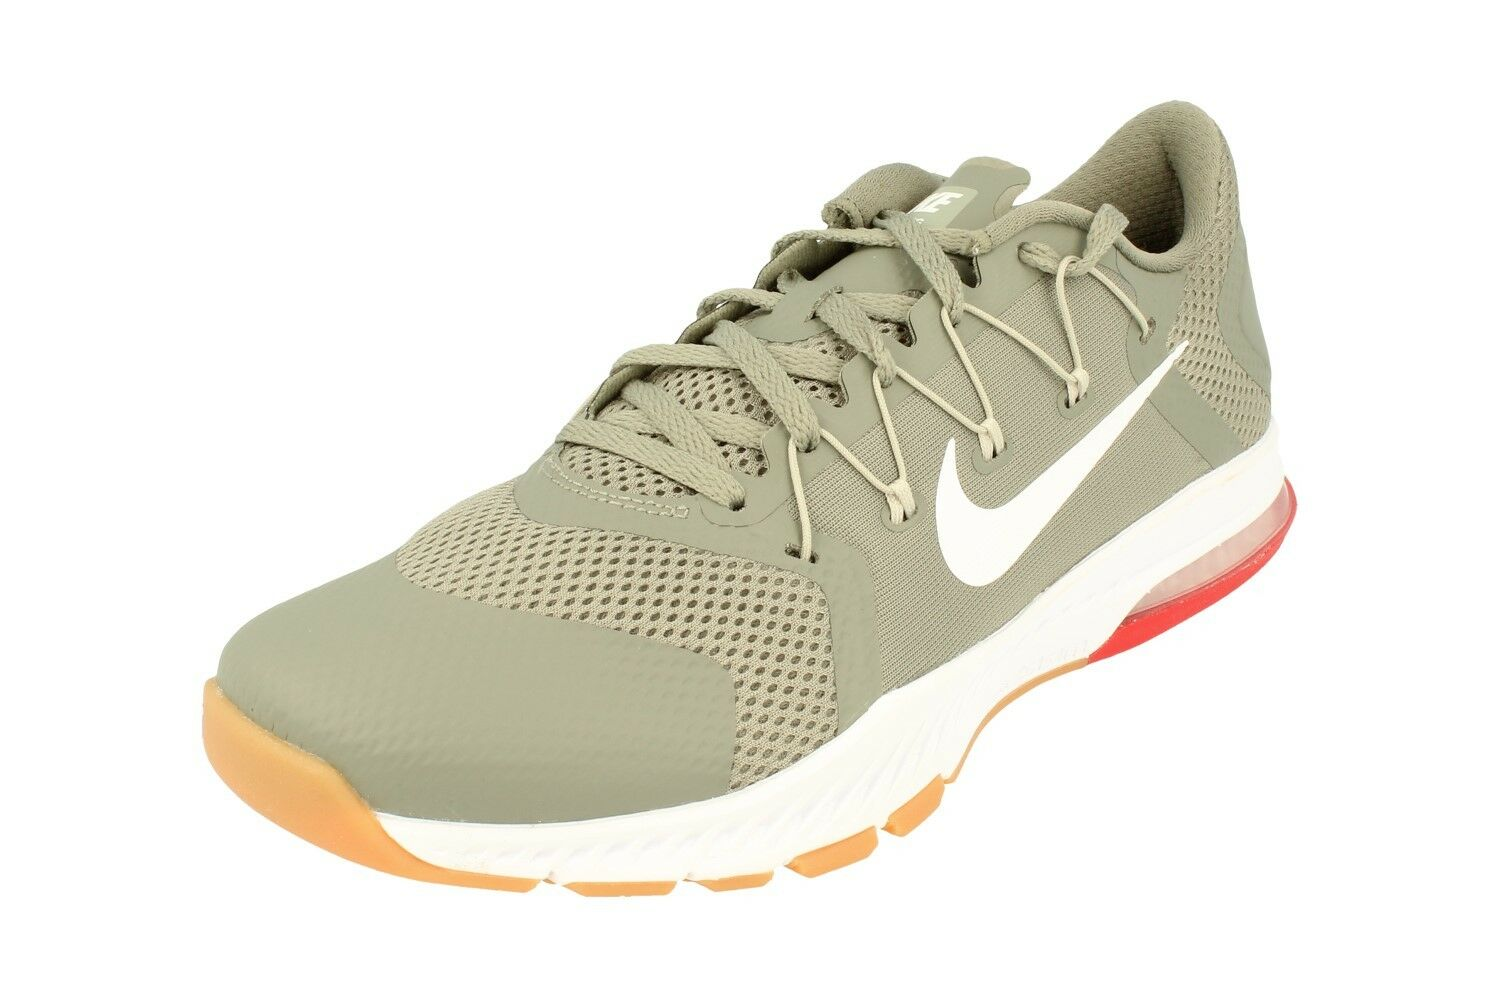 Nike Air Zoom Train Complete Mens Running Trainers 882119 Sneakers Shoes 008